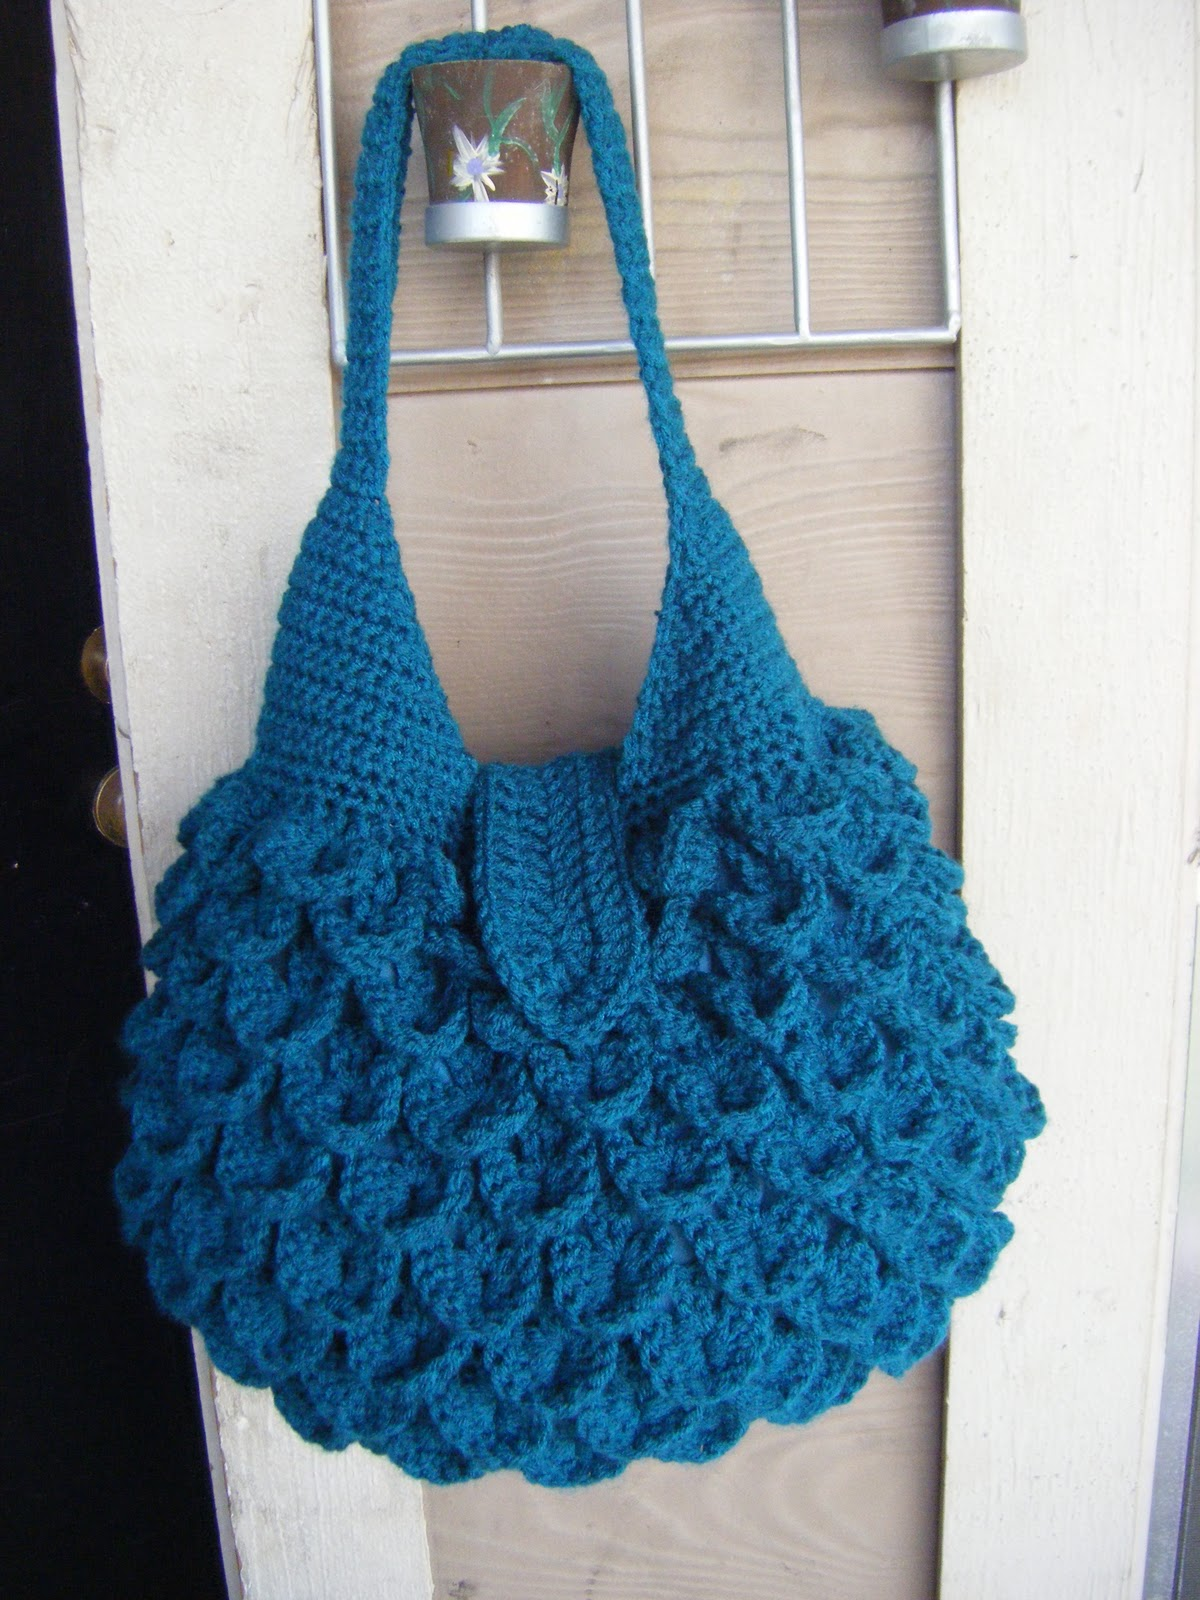 Crochet Bag Pattern Design : FREE CROCHET BAG HOLDER PATTERN - Crochet and Knitting ...